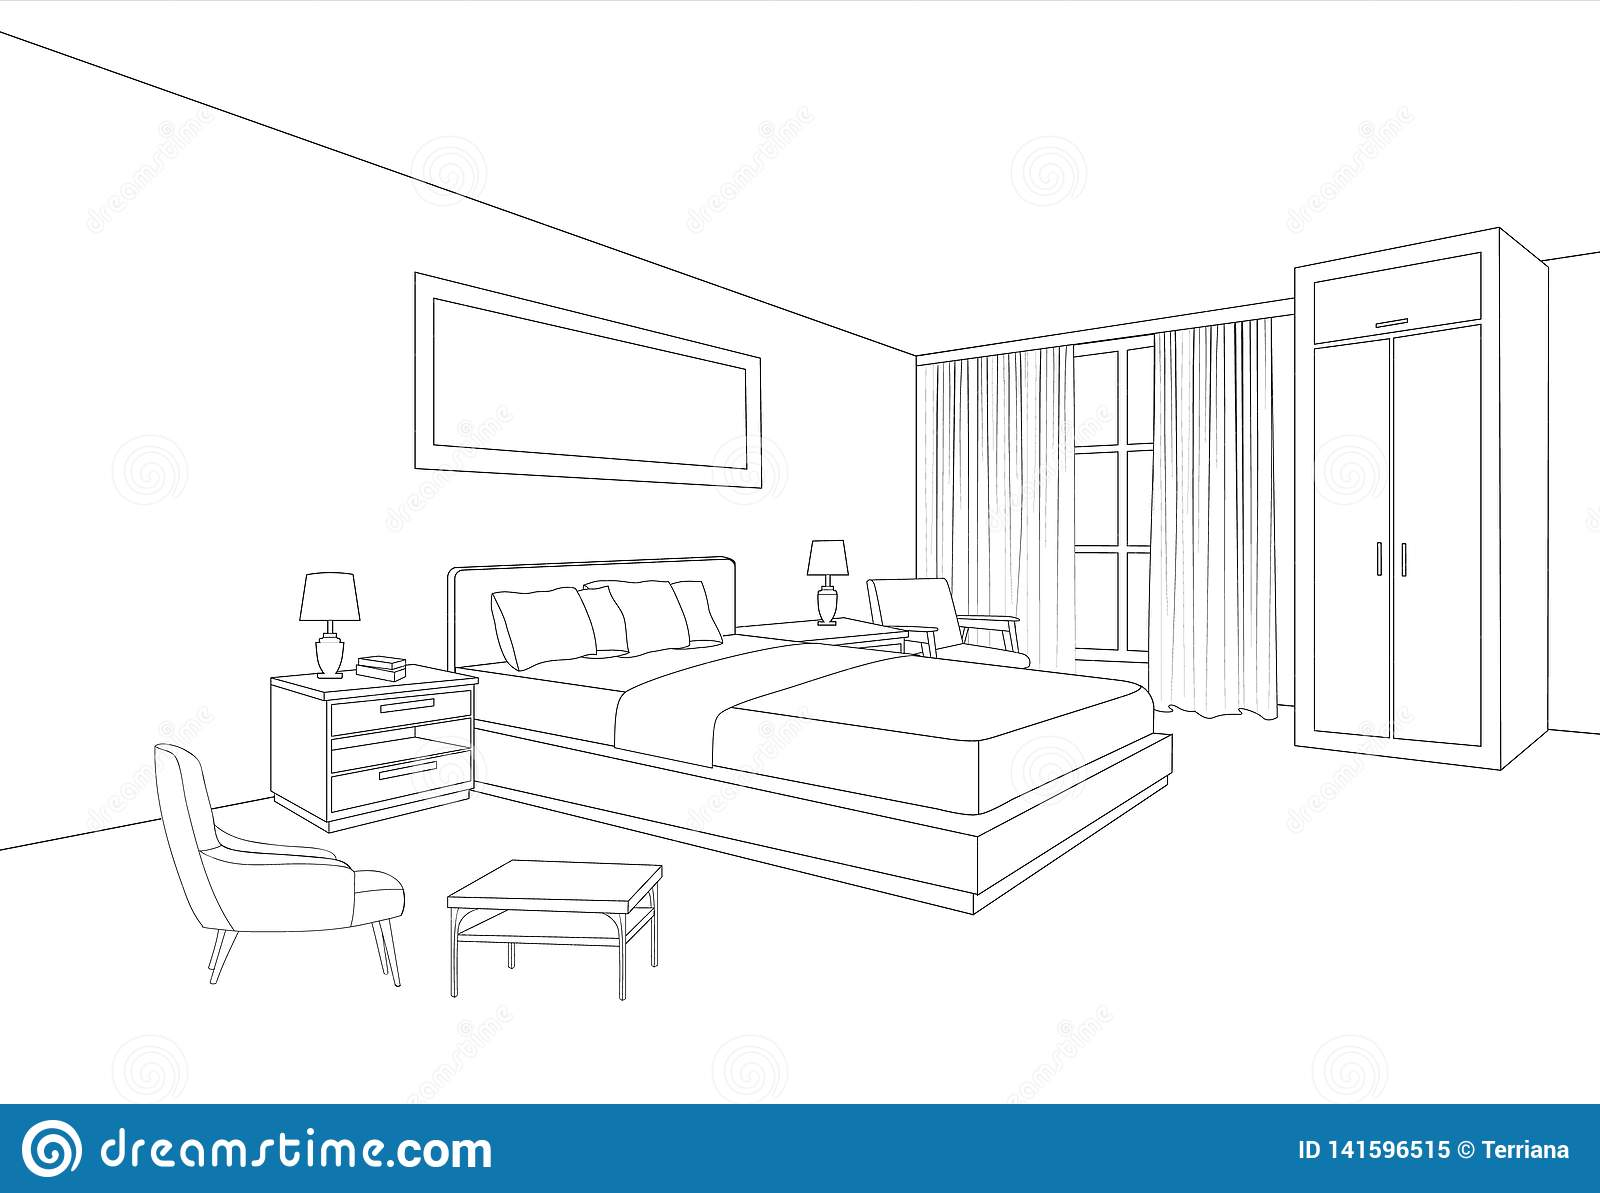 Bedroom Furniture Interior. Room Line Sketch Drawing Stock